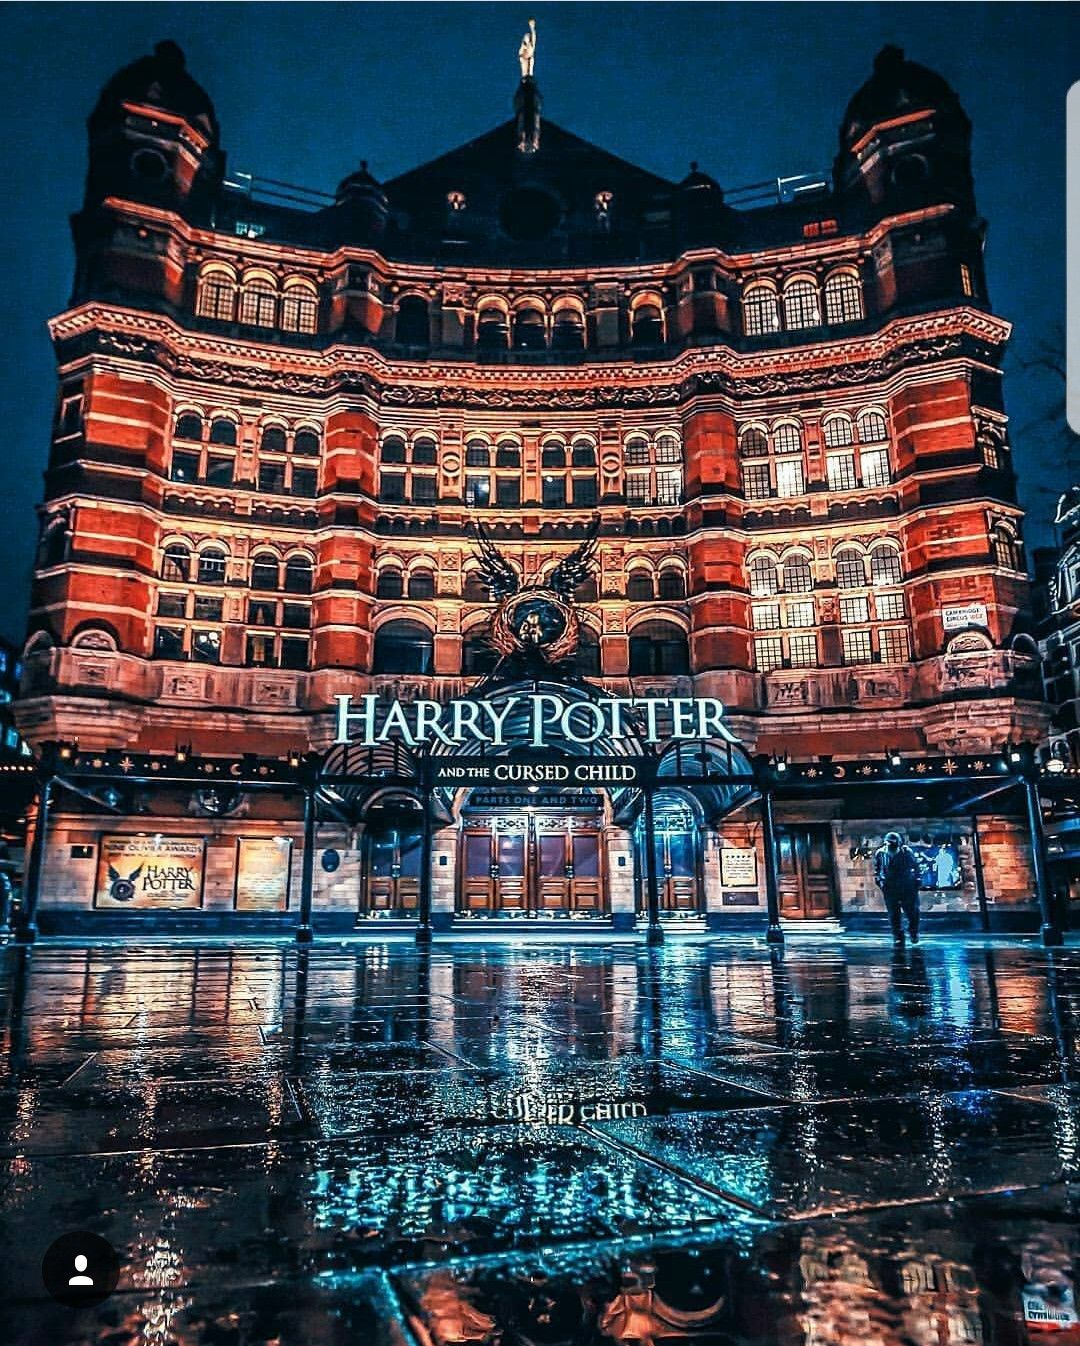 Harry Potter And The Cursed Child London England London Best Places To Travel London City